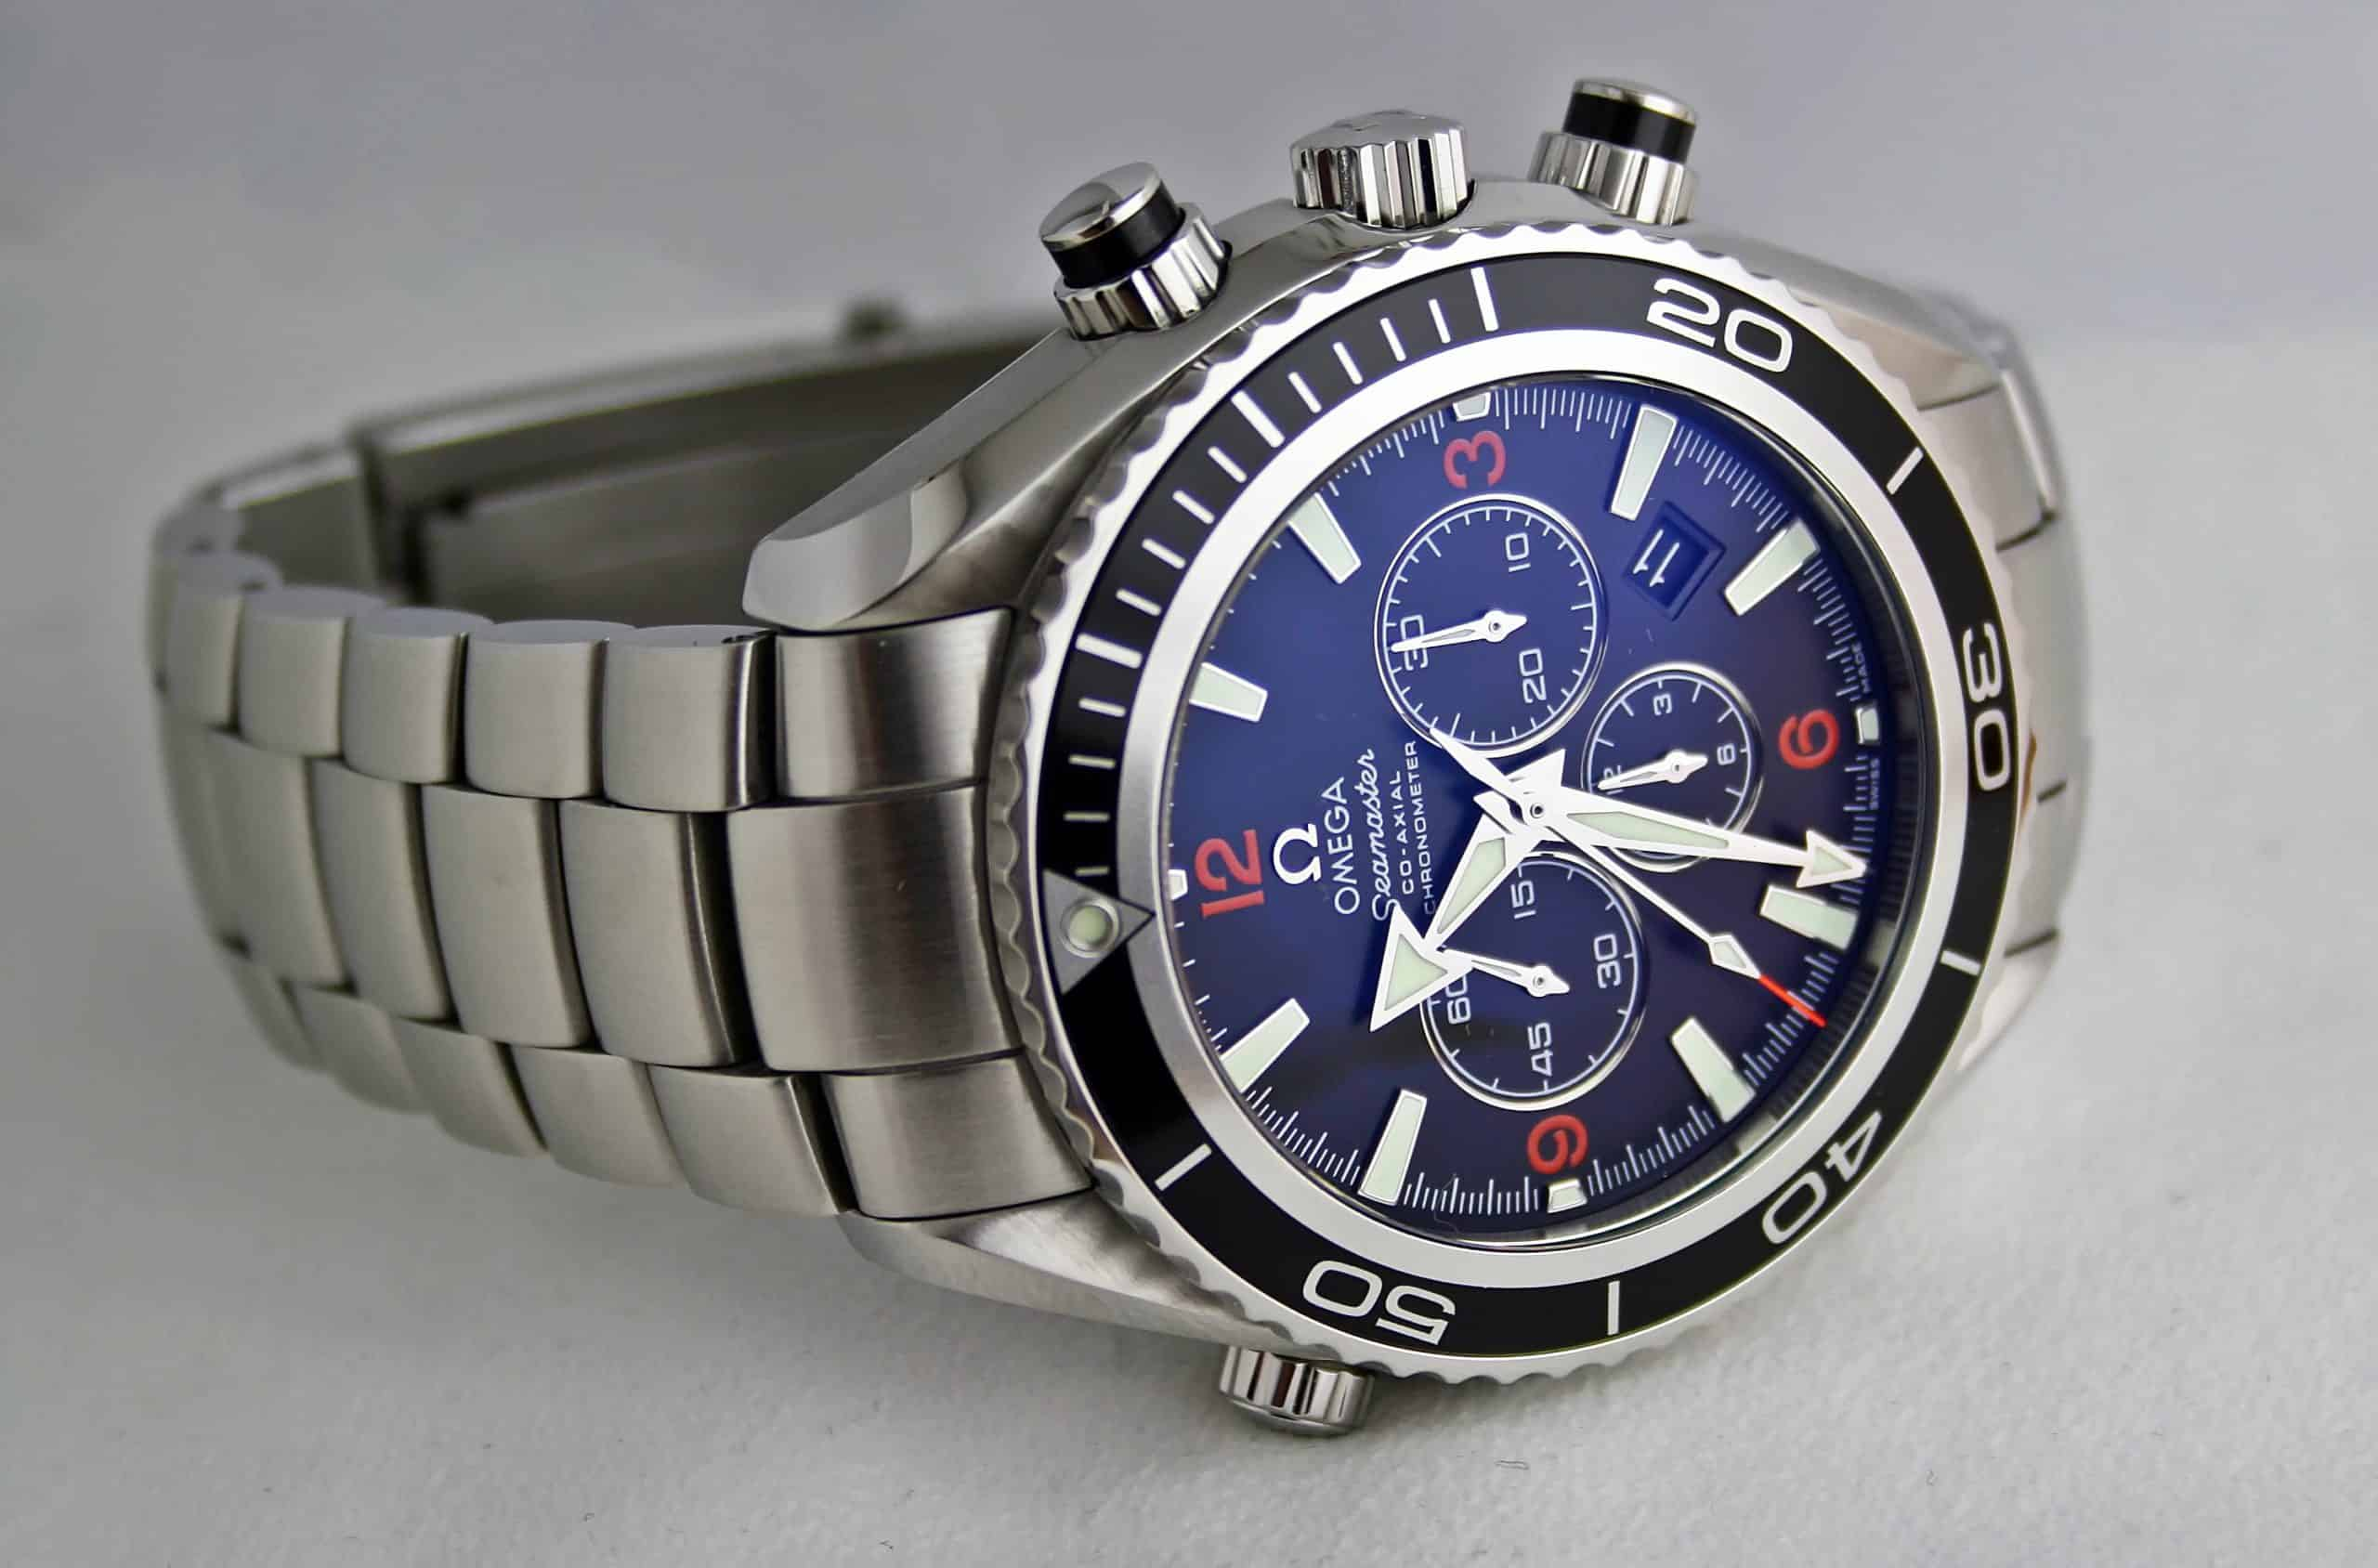 The Secrets On Buying From A Seiko Brand Watch Dealer